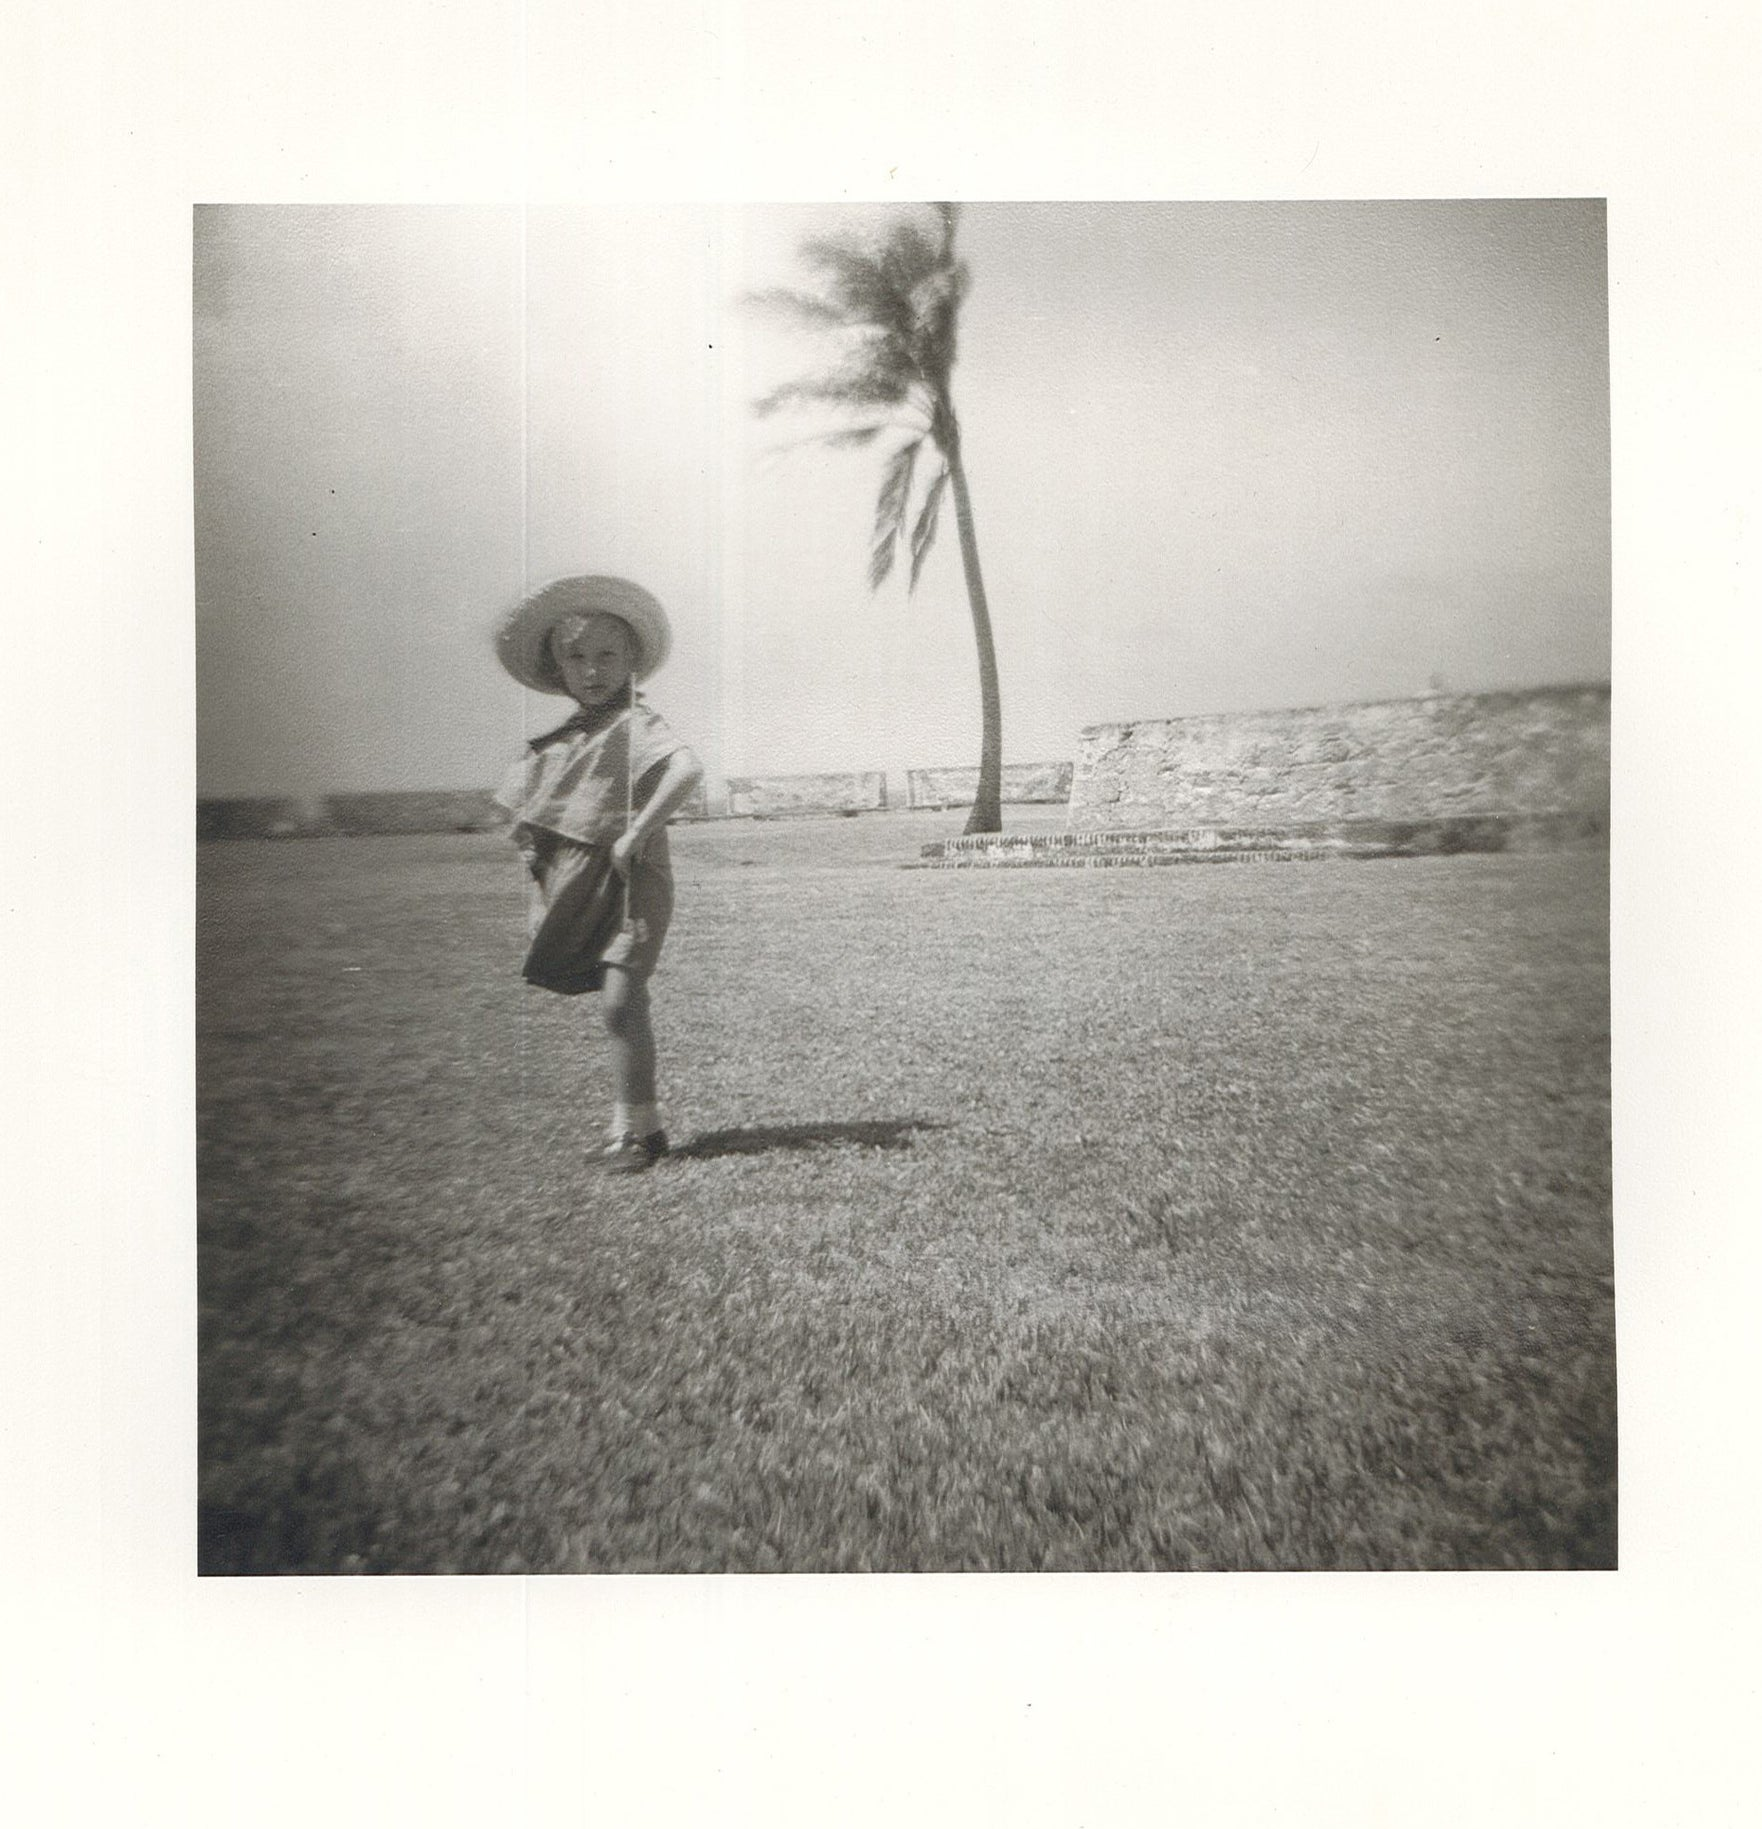 A picture of a young boy in a hat with a palm tree behind him